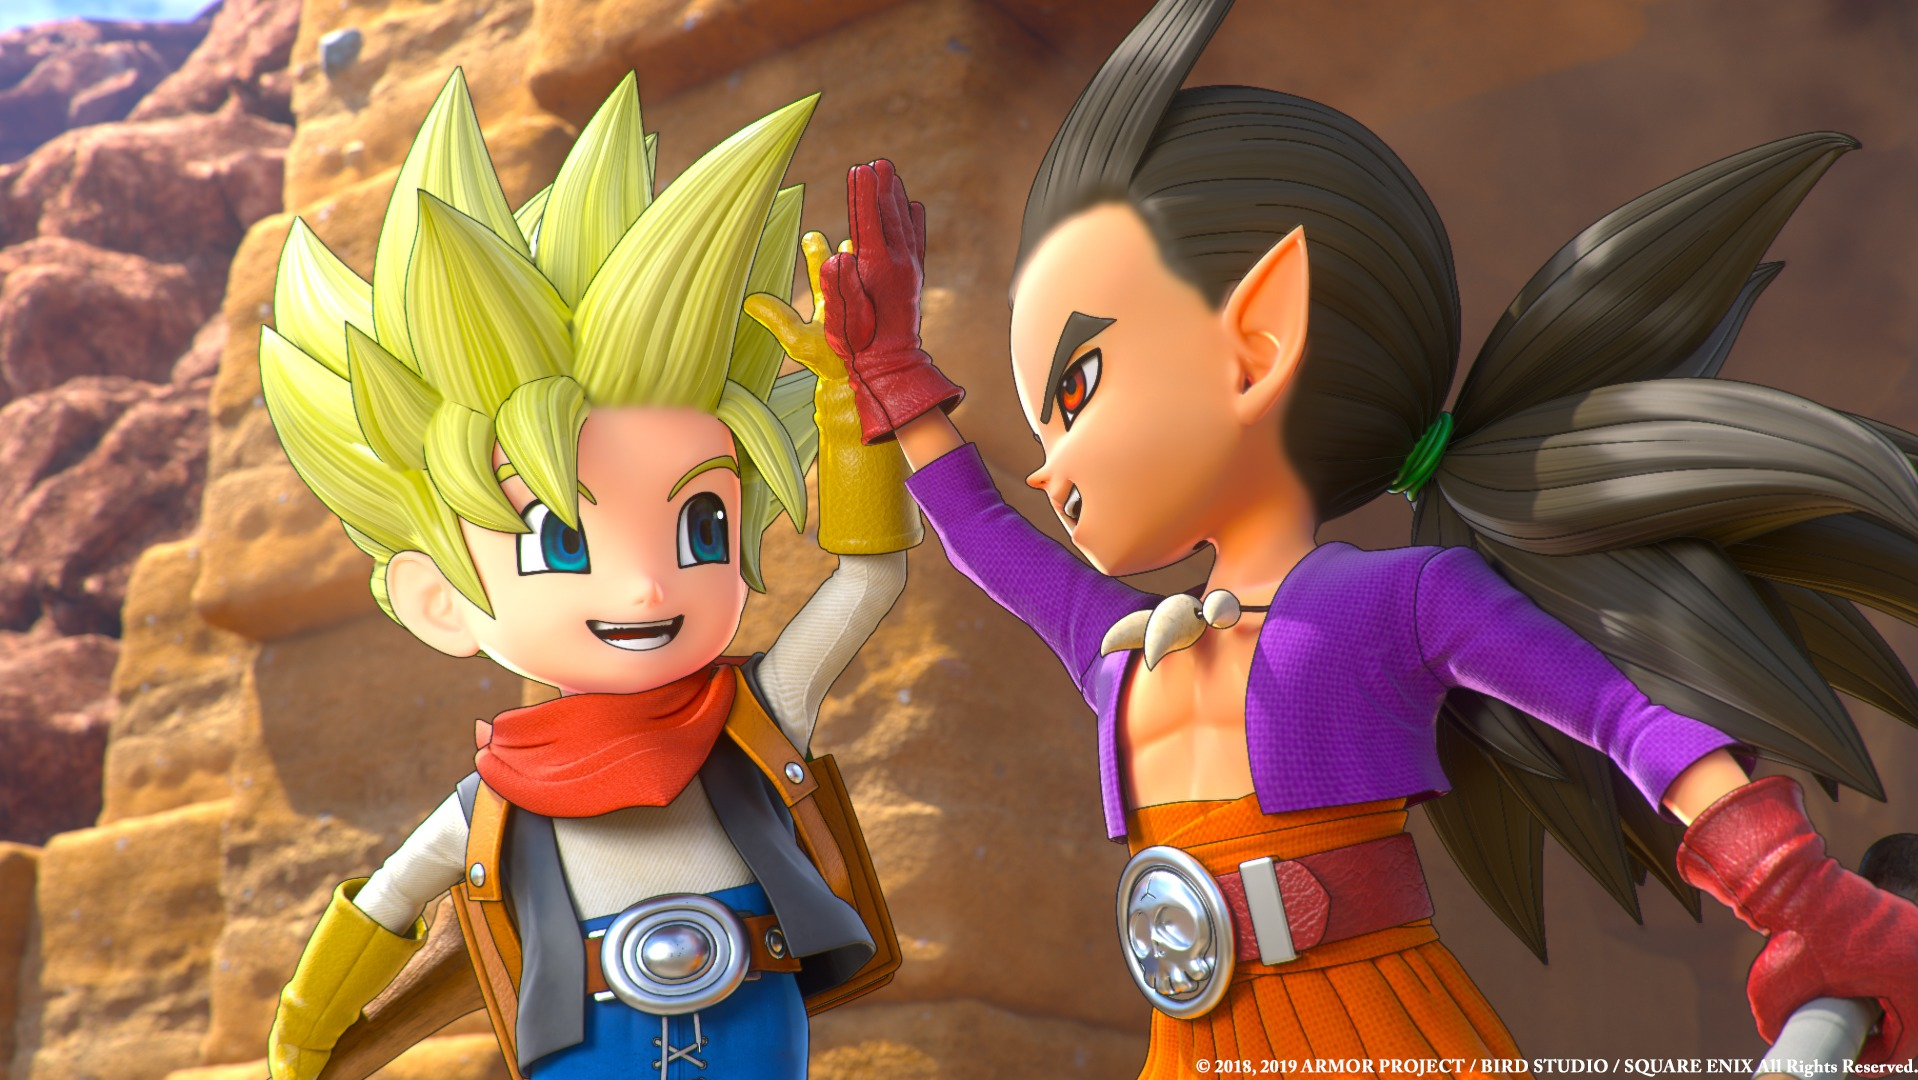 An Update to Dragon Quest Builders 2 Will Include More Hairstyles and an Epilogue